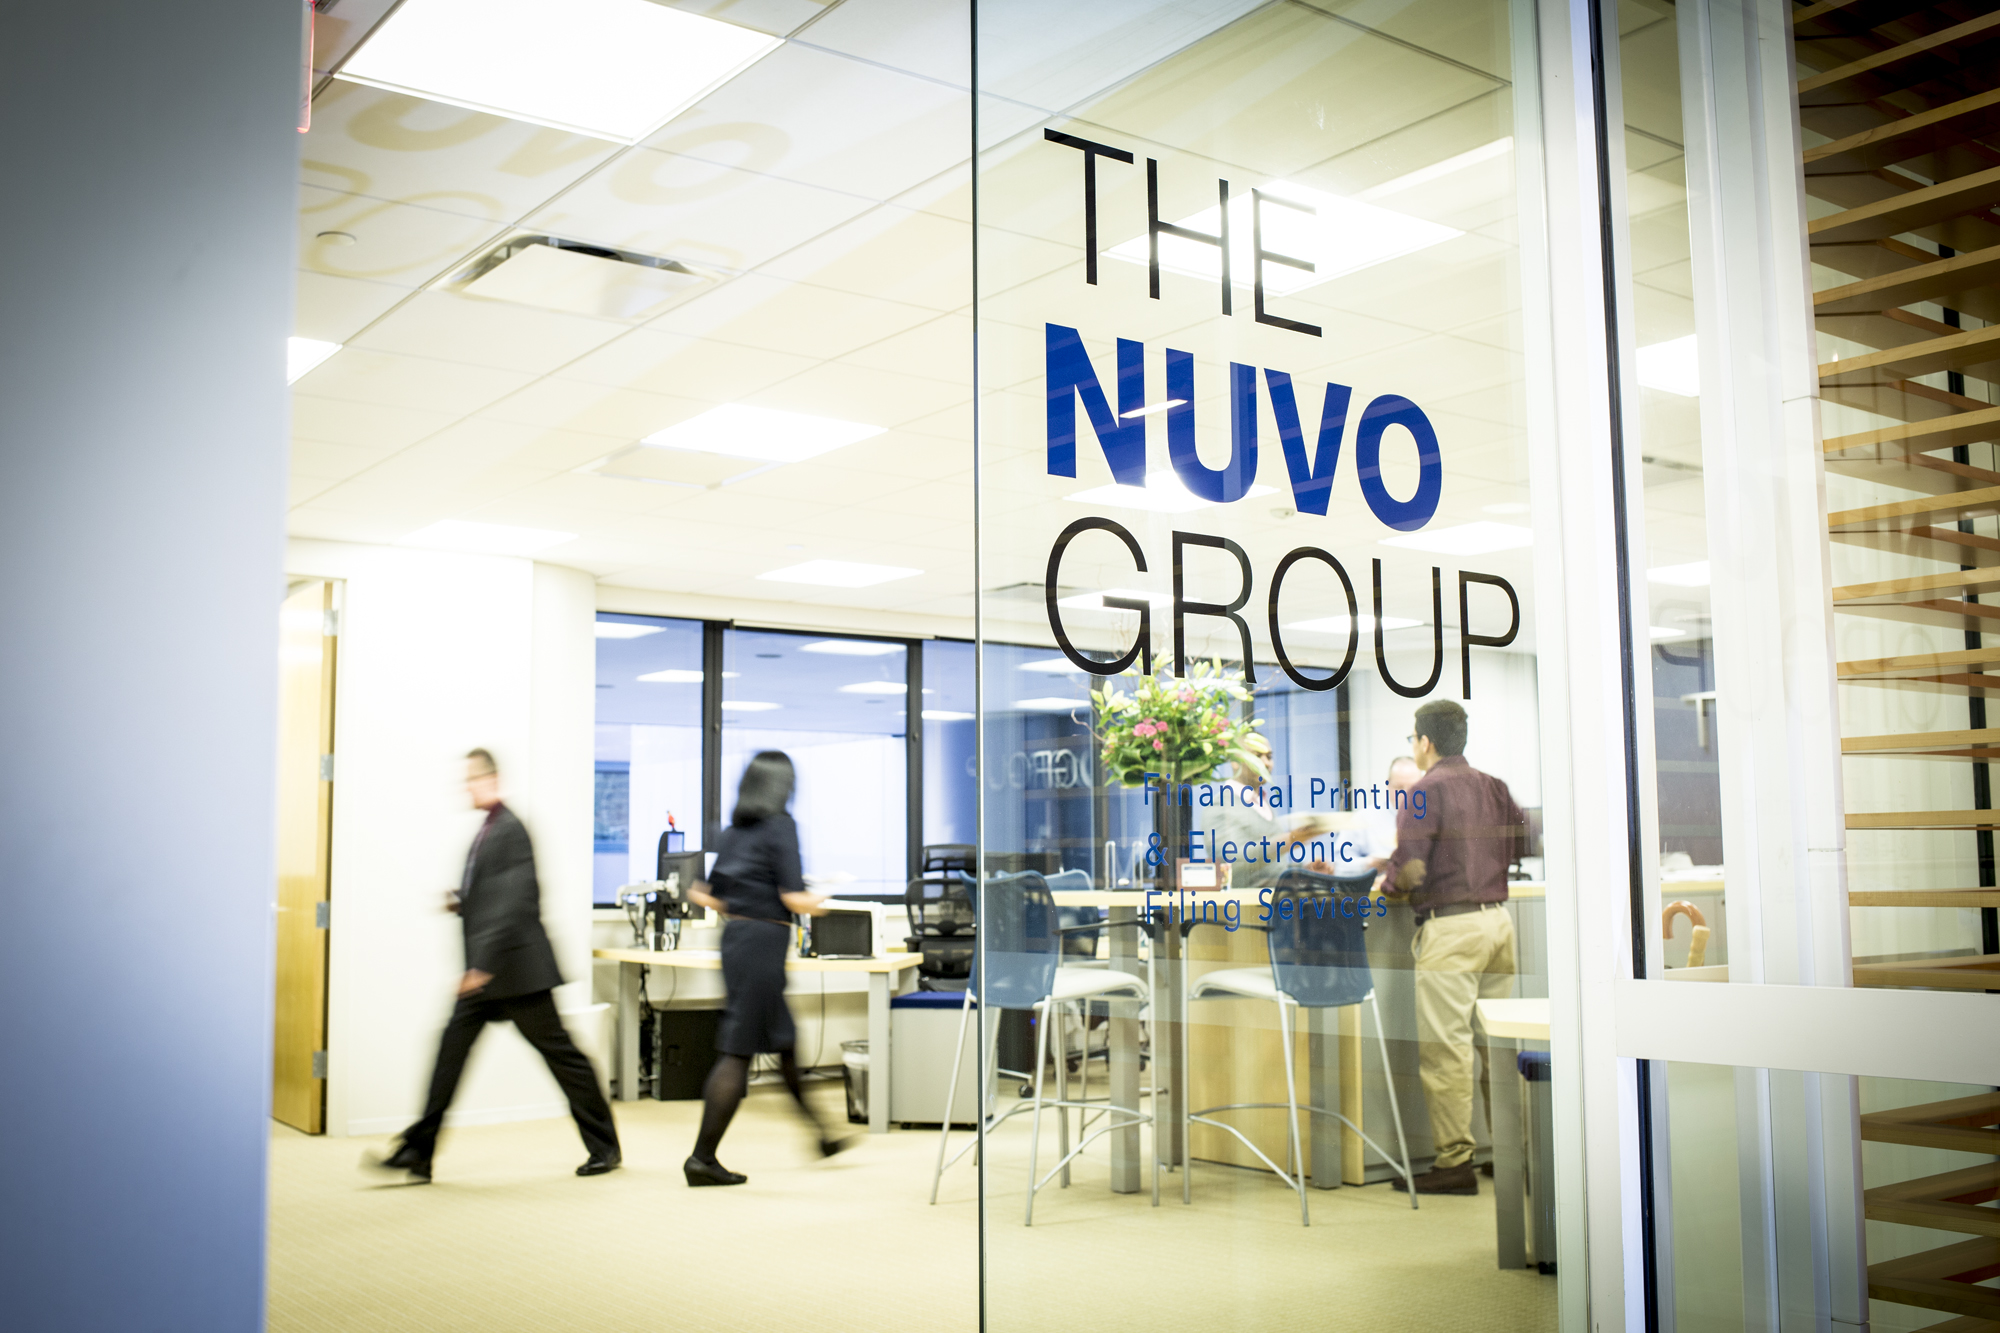 The Nuvo Group Office